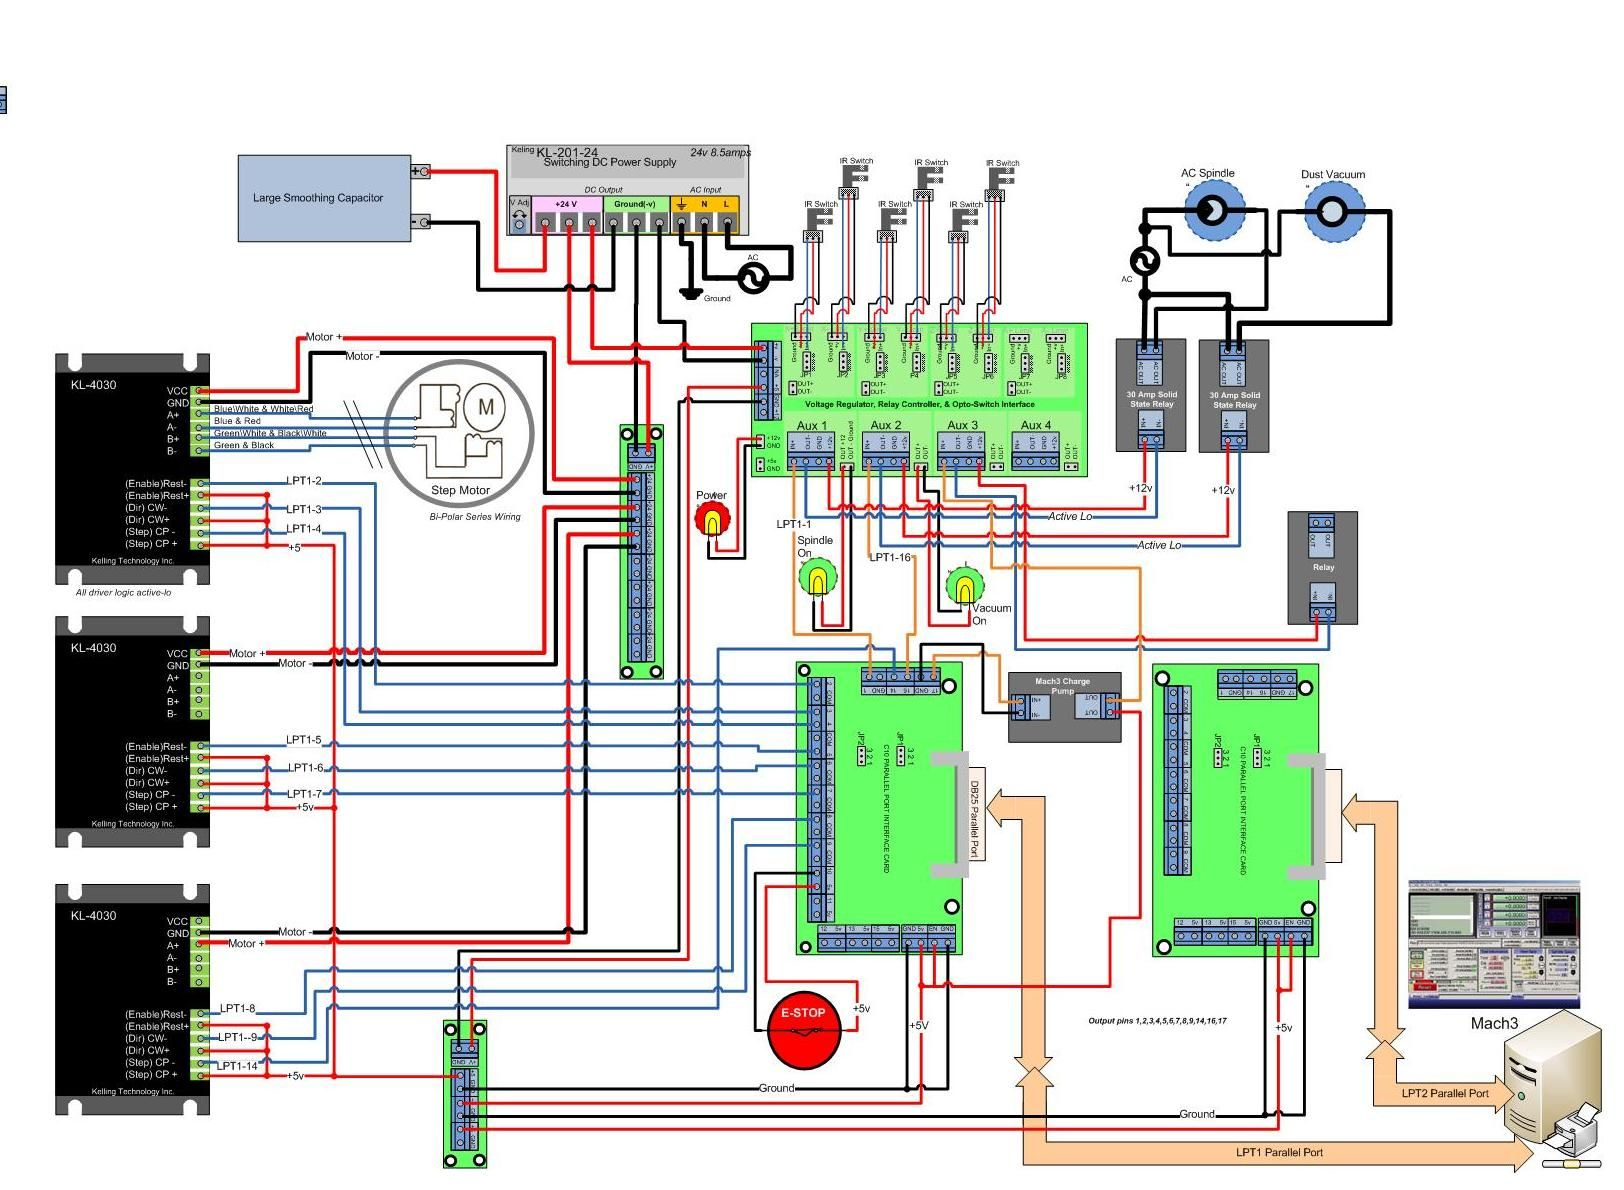 de60b189cc98ab72eeb9d2e3f3d349dc cnc wiring diagram cnc pinterest ciclop 3d scanner arduino uno/cnc shield v3 wiring diagram at reclaimingppi.co